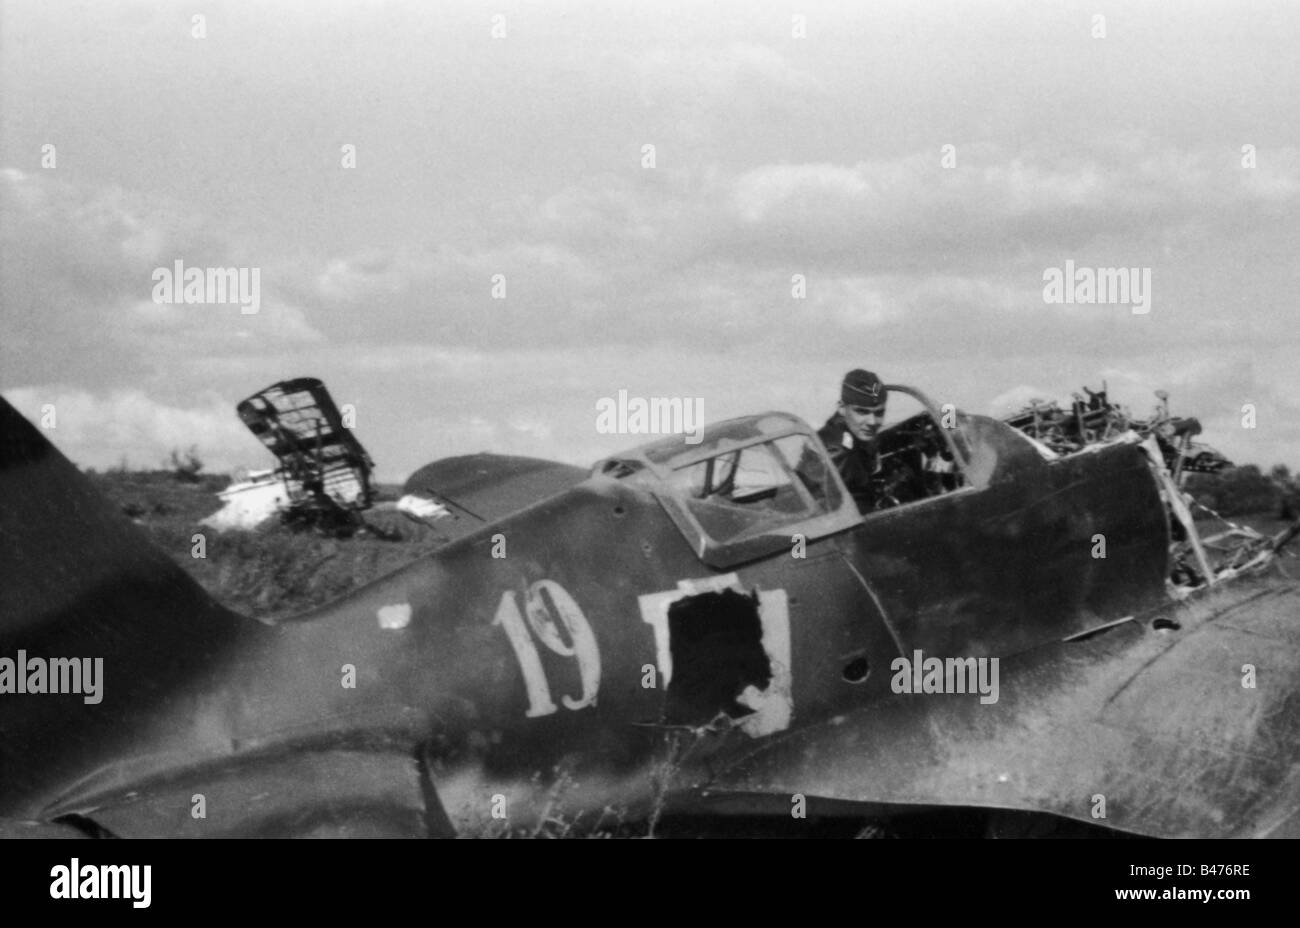 events, Second World War / WWII, aerial warfare, aircraft, crashed / damaged, Luftwaffe pilot in the cockpit of Stock Photo